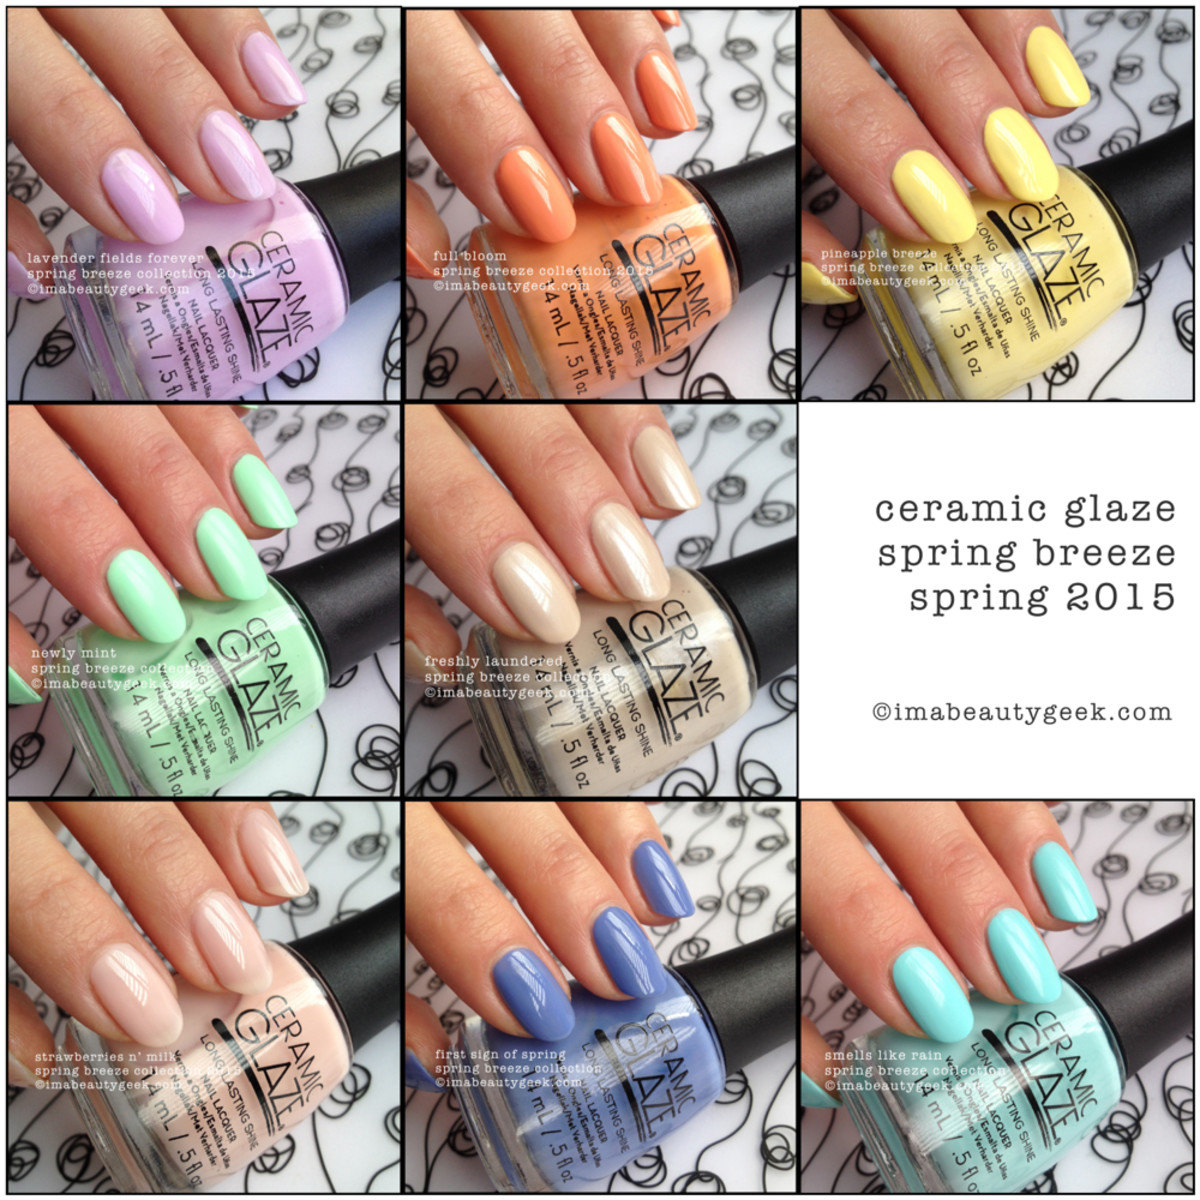 Ceramic Glaze Spring Breeze Nail Polish Collection Spring 2015